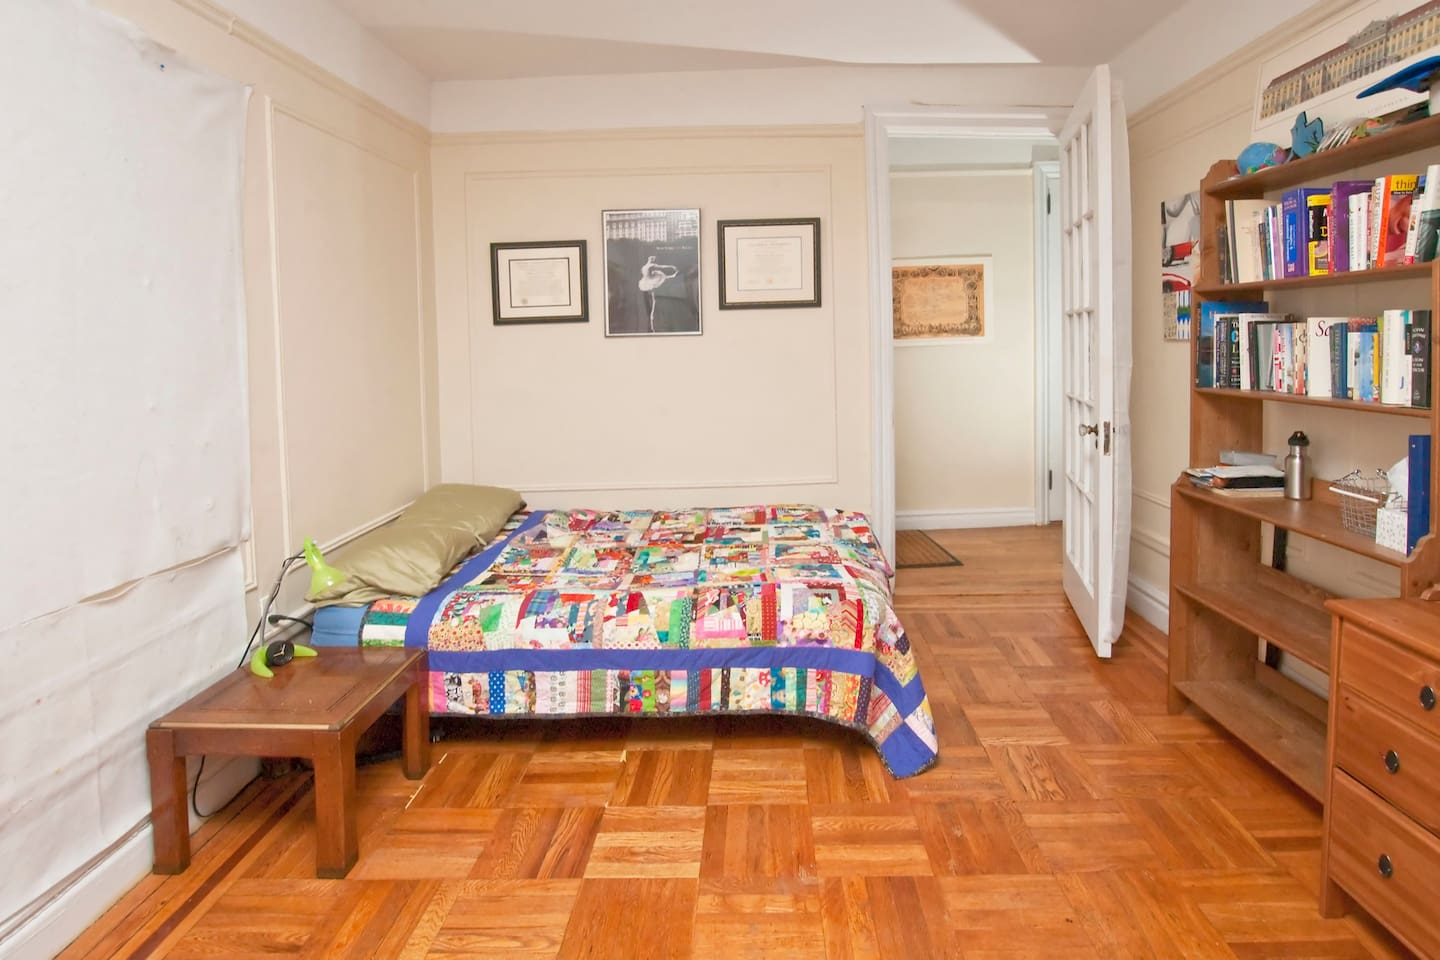 Large bright, private room room with handmade quilts, perfect for two. This is an Airbnb photo taken by a professional photographer.